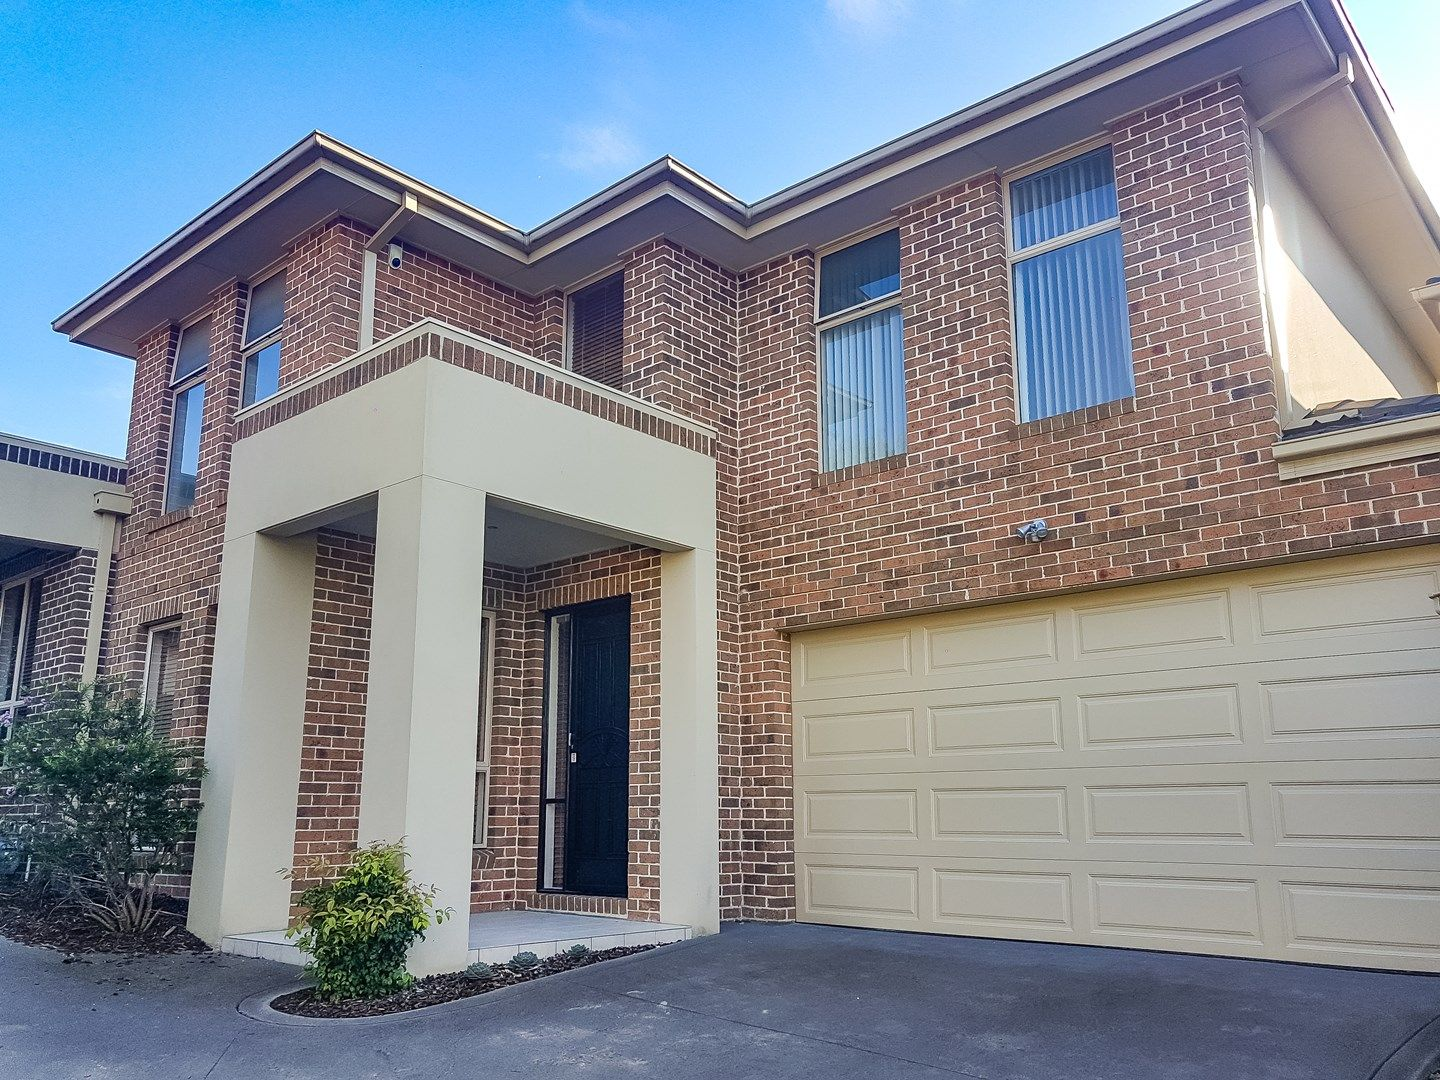 2/67 Russell Crescent, Doncaster East VIC 3109, Image 0